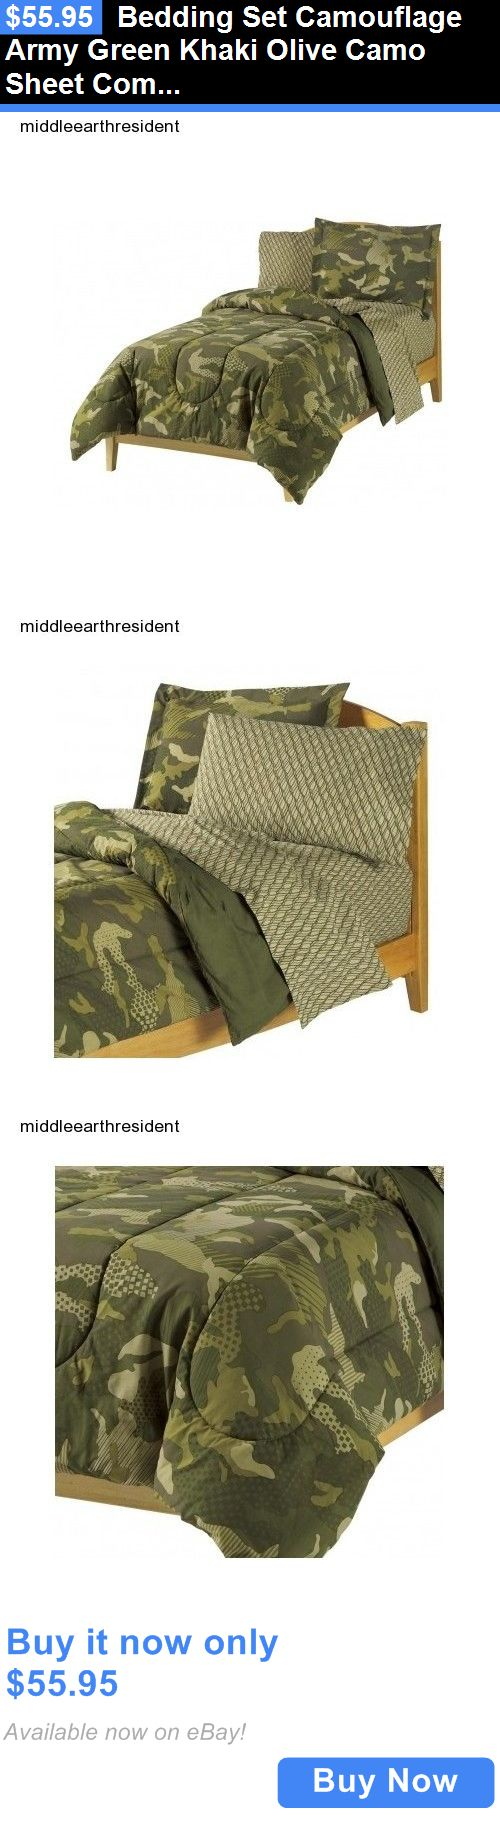 Kids at Home: Bedding Set Camouflage Army Green Khaki Olive Camo Sheet Comforter Twin Full BUY IT NOW ONLY: $55.95